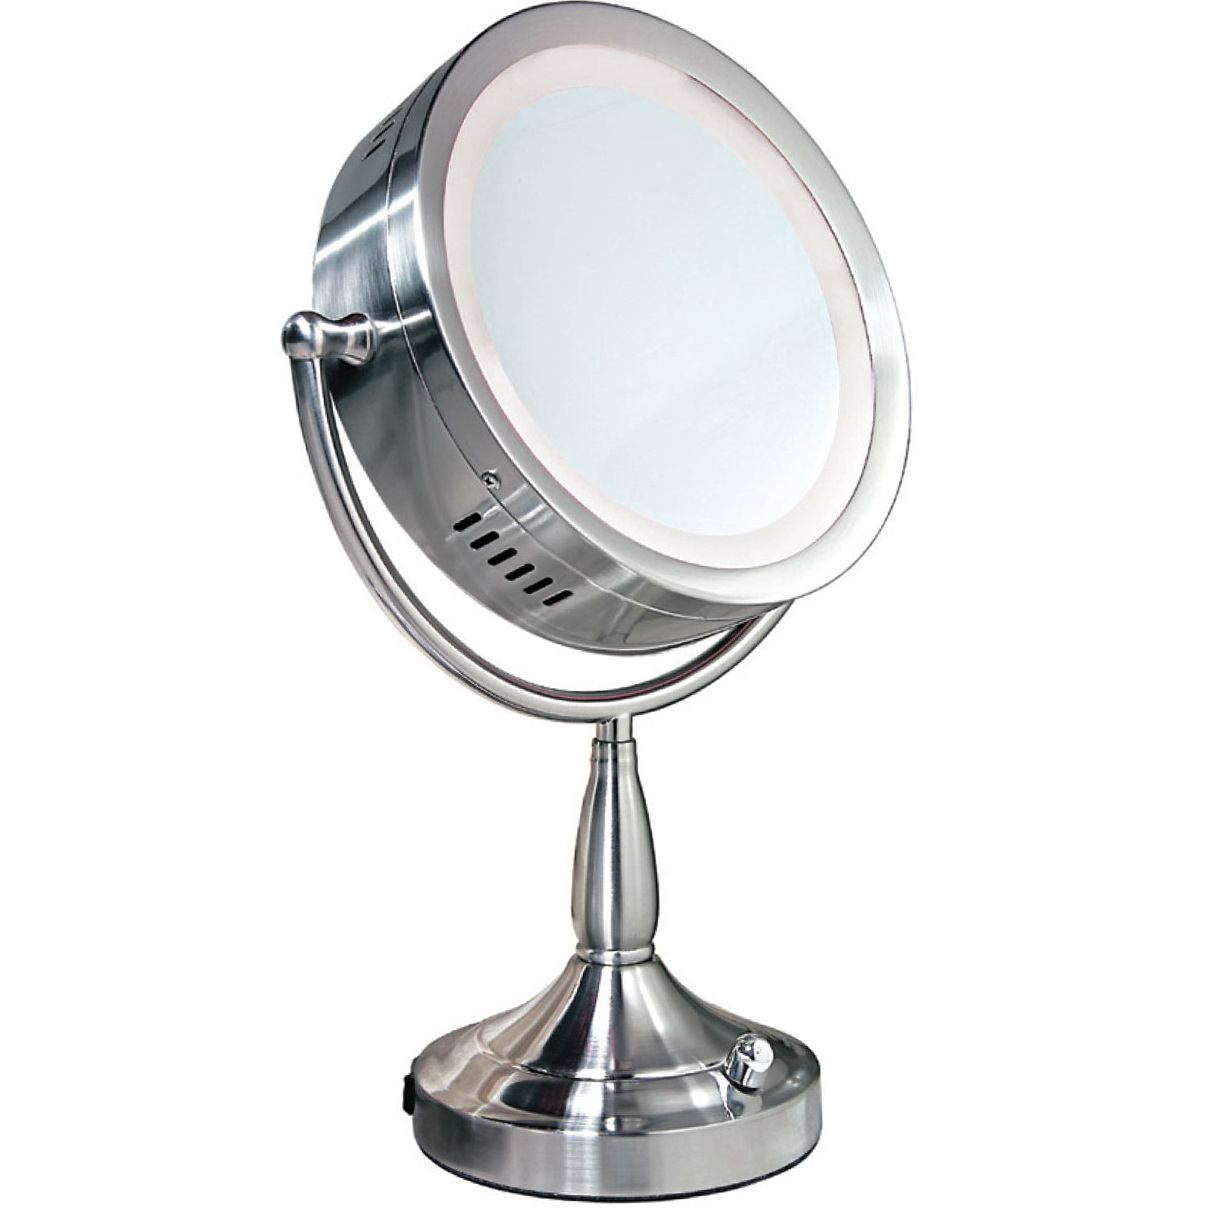 Lighted Makeup Mirrors At Walmart Home Design Ideas